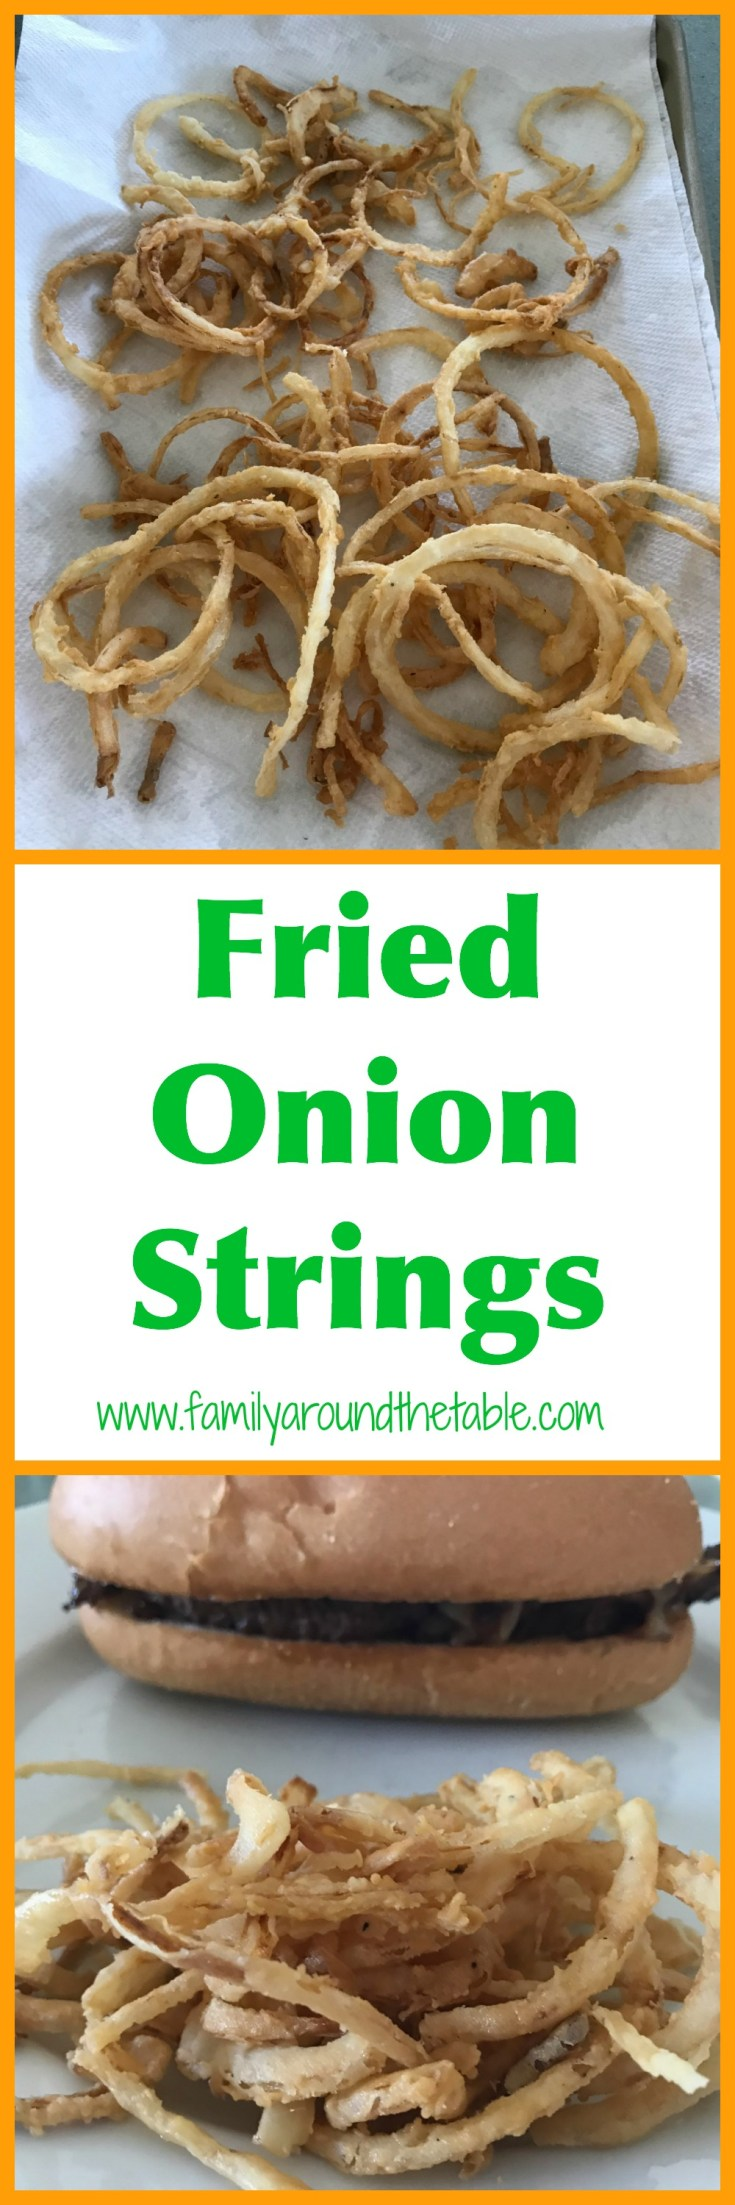 Restaurant style fried onion straws are easy to make at home. You're going to want to make a double batch.